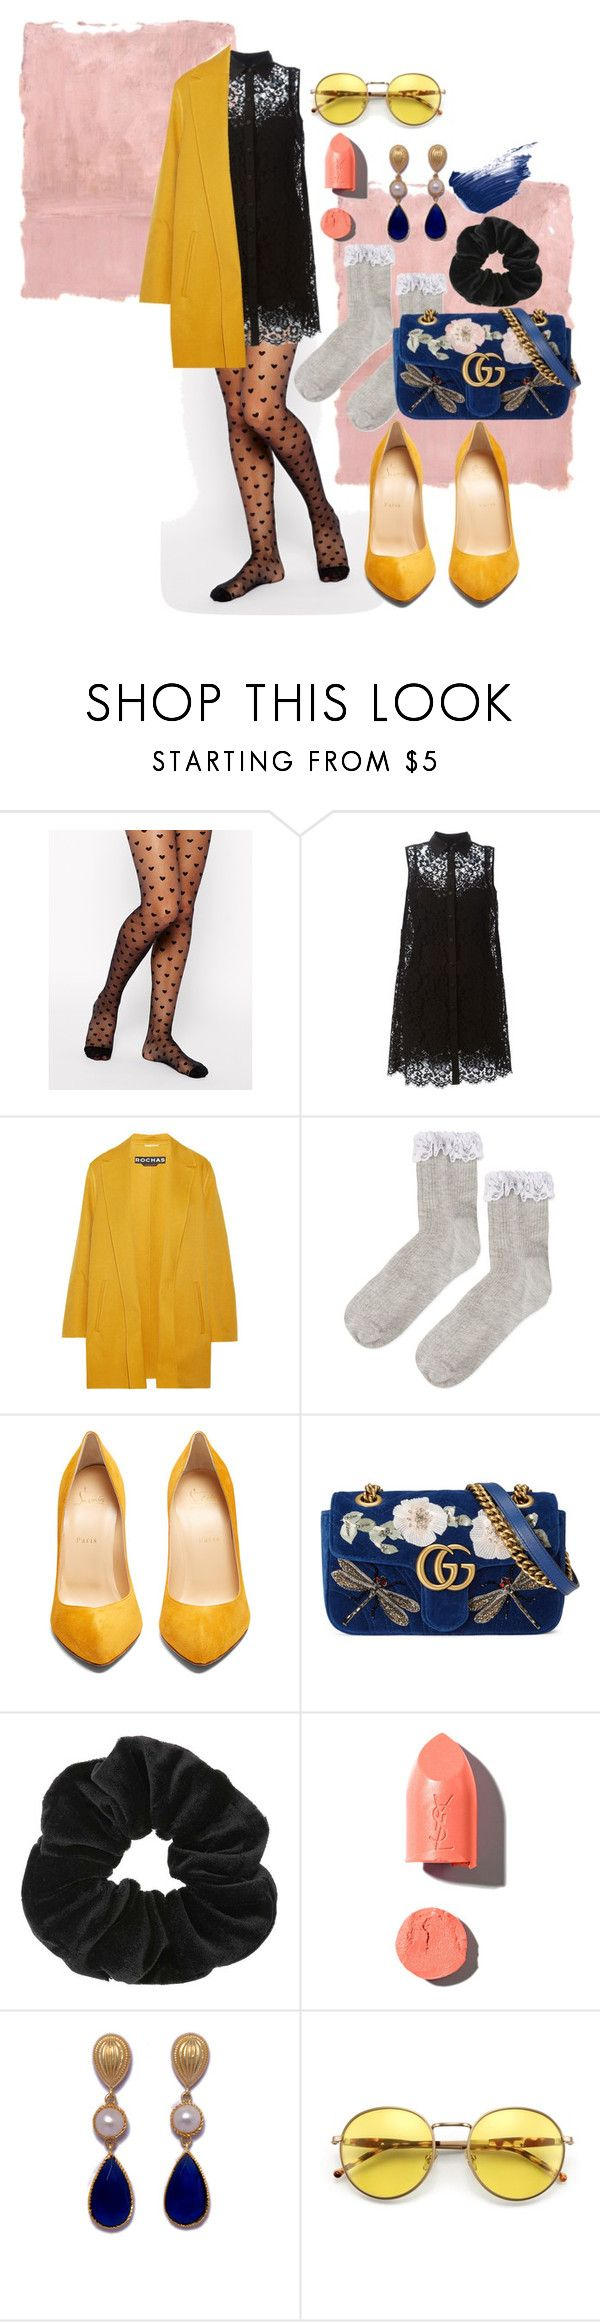 """""""lace it up"""" by nover on Polyvore featuring Gipsy, Rothko, Dolce&Gabbana, Rochas, Topshop, Christian Louboutin, Gucci, Miss Selfridge, PUR and Wildfox"""